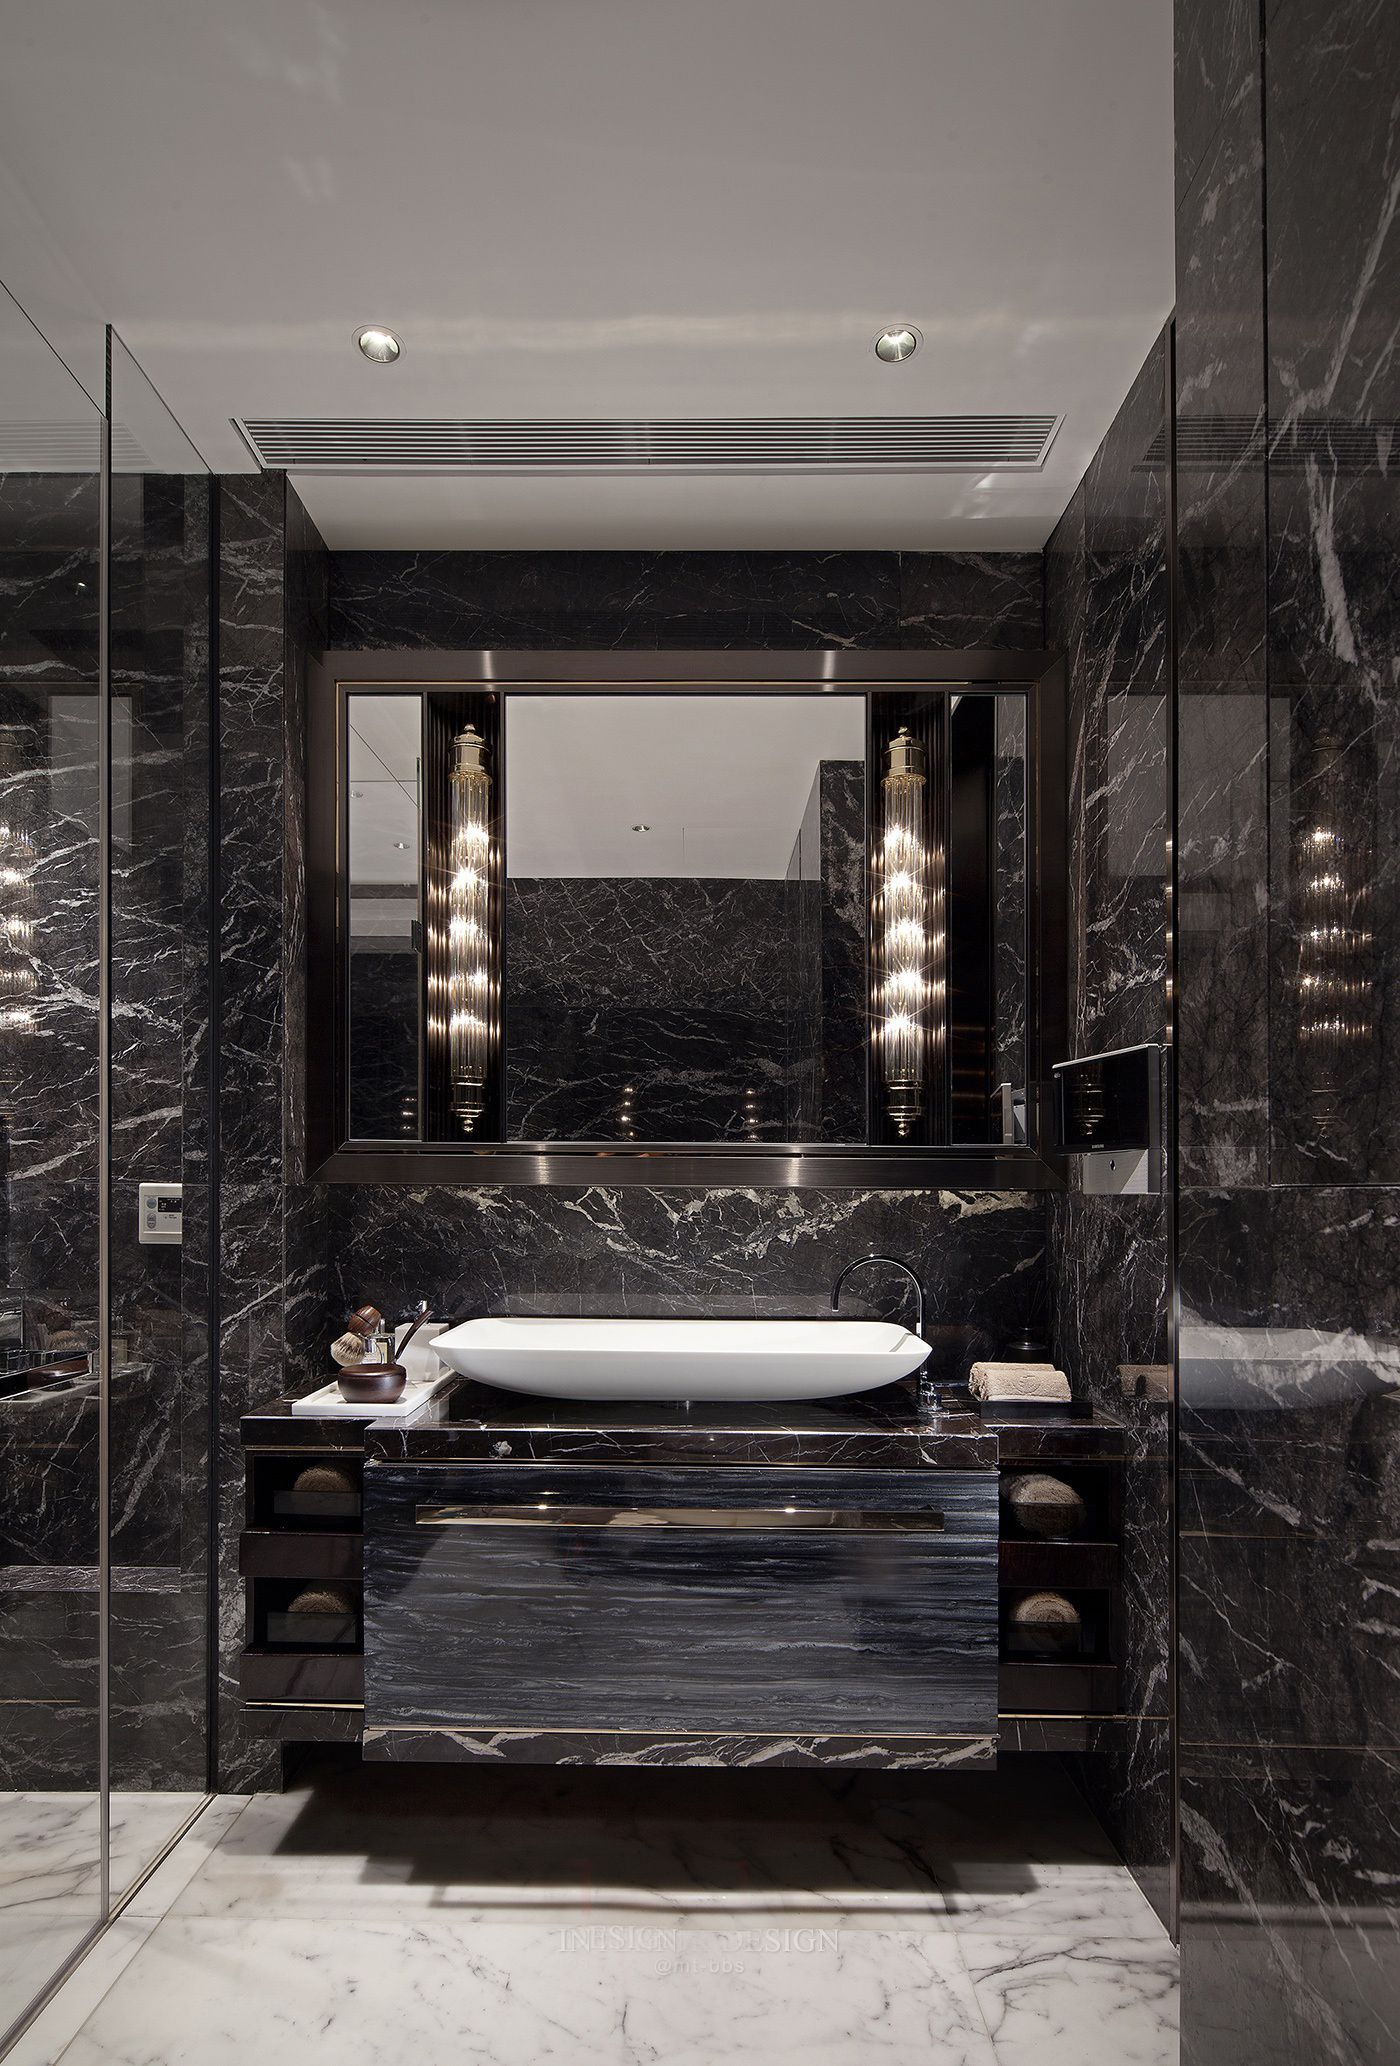 Luxury Bathroom Luxury Modern Bathrooms Pinterest Luxury Interiors And Bath